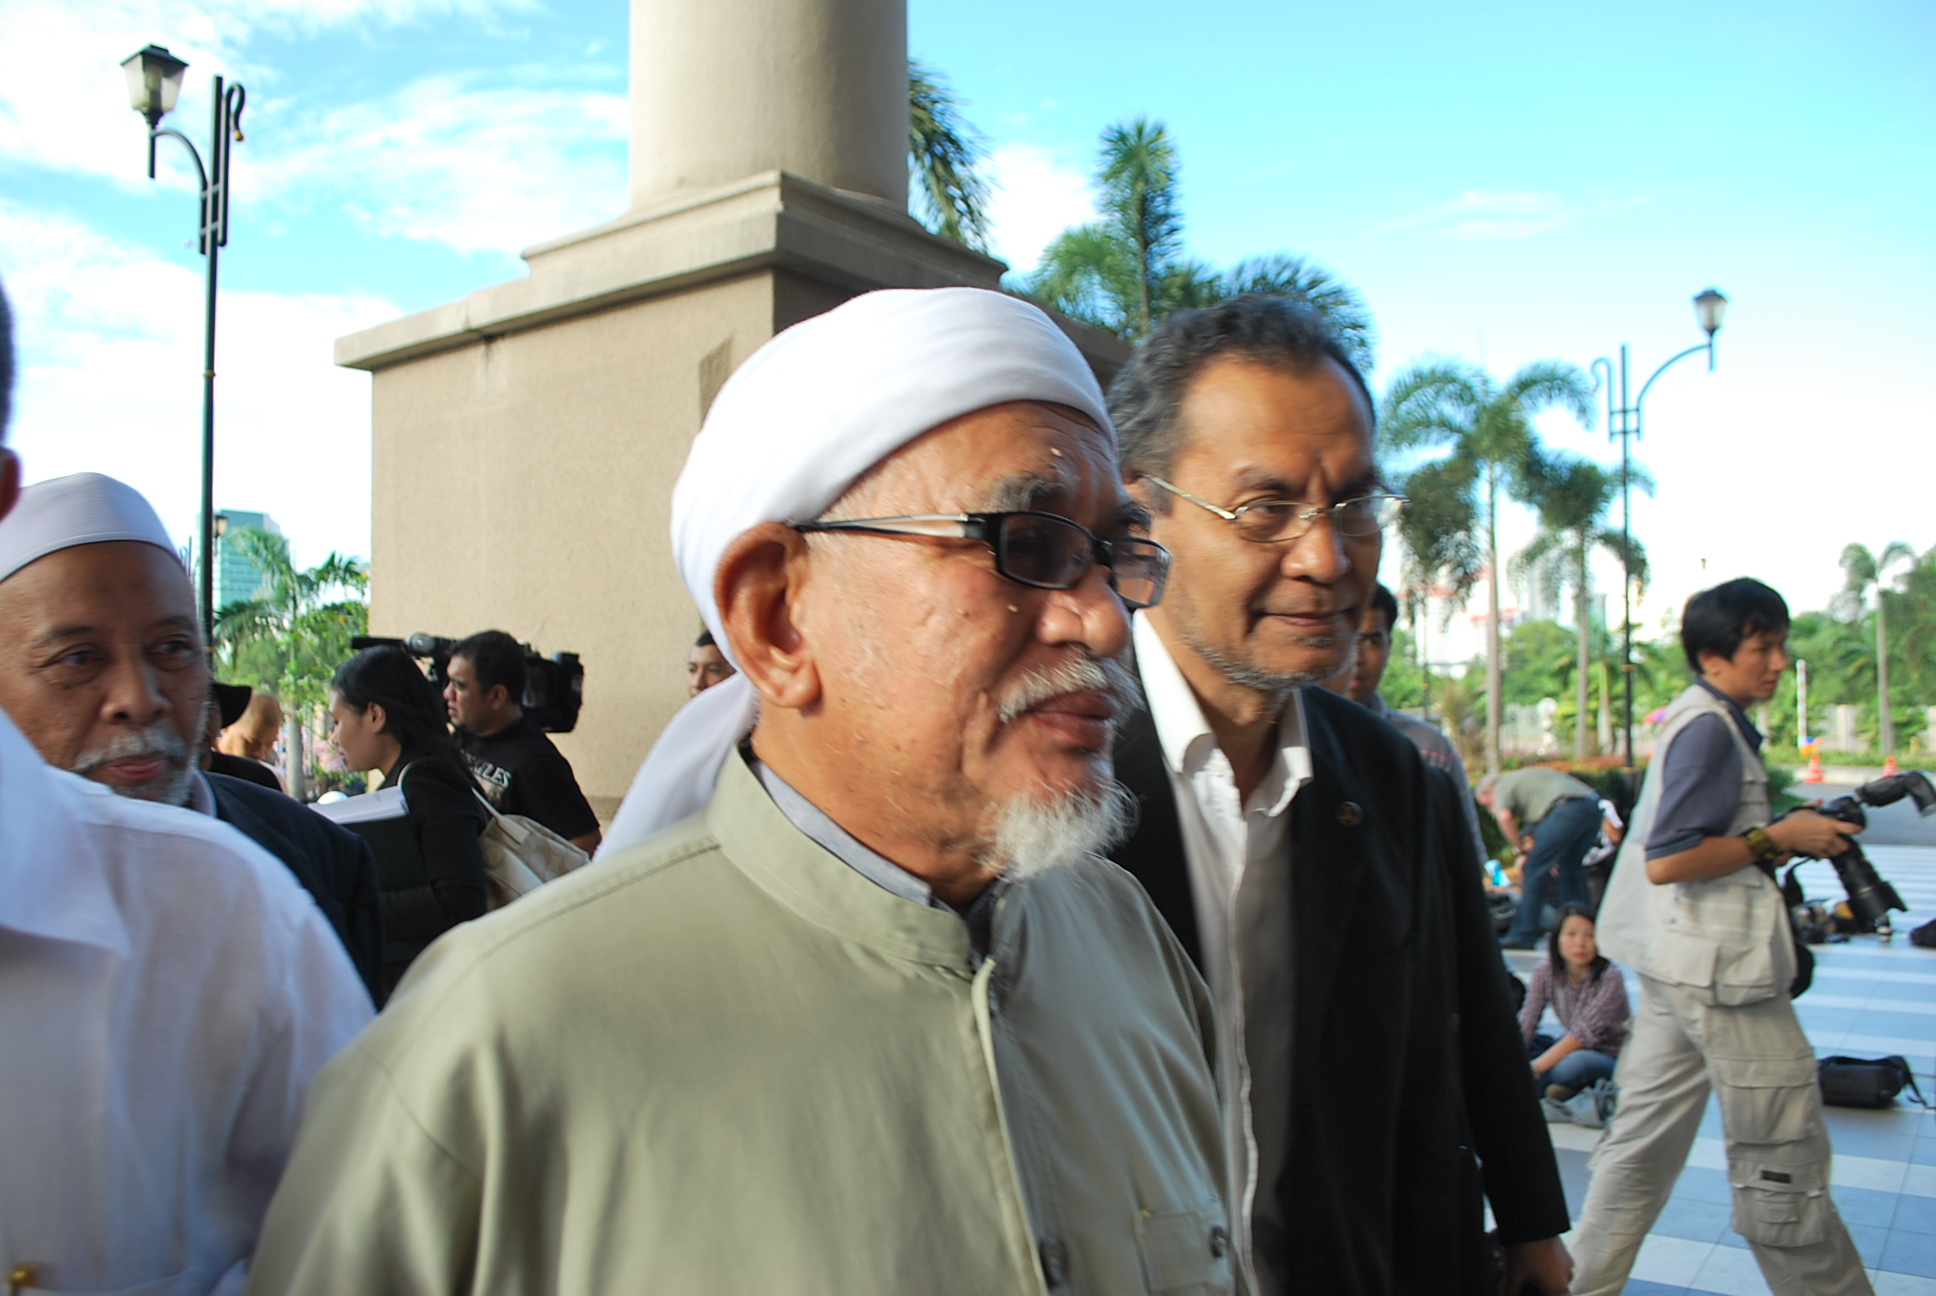 Leader of Malaysia's Islamist party PAS Abdul Hadi Awang arrives at the court for verdict in Anwar Ibrahim sodomy trial last January (Photo: Simon Roughneen)